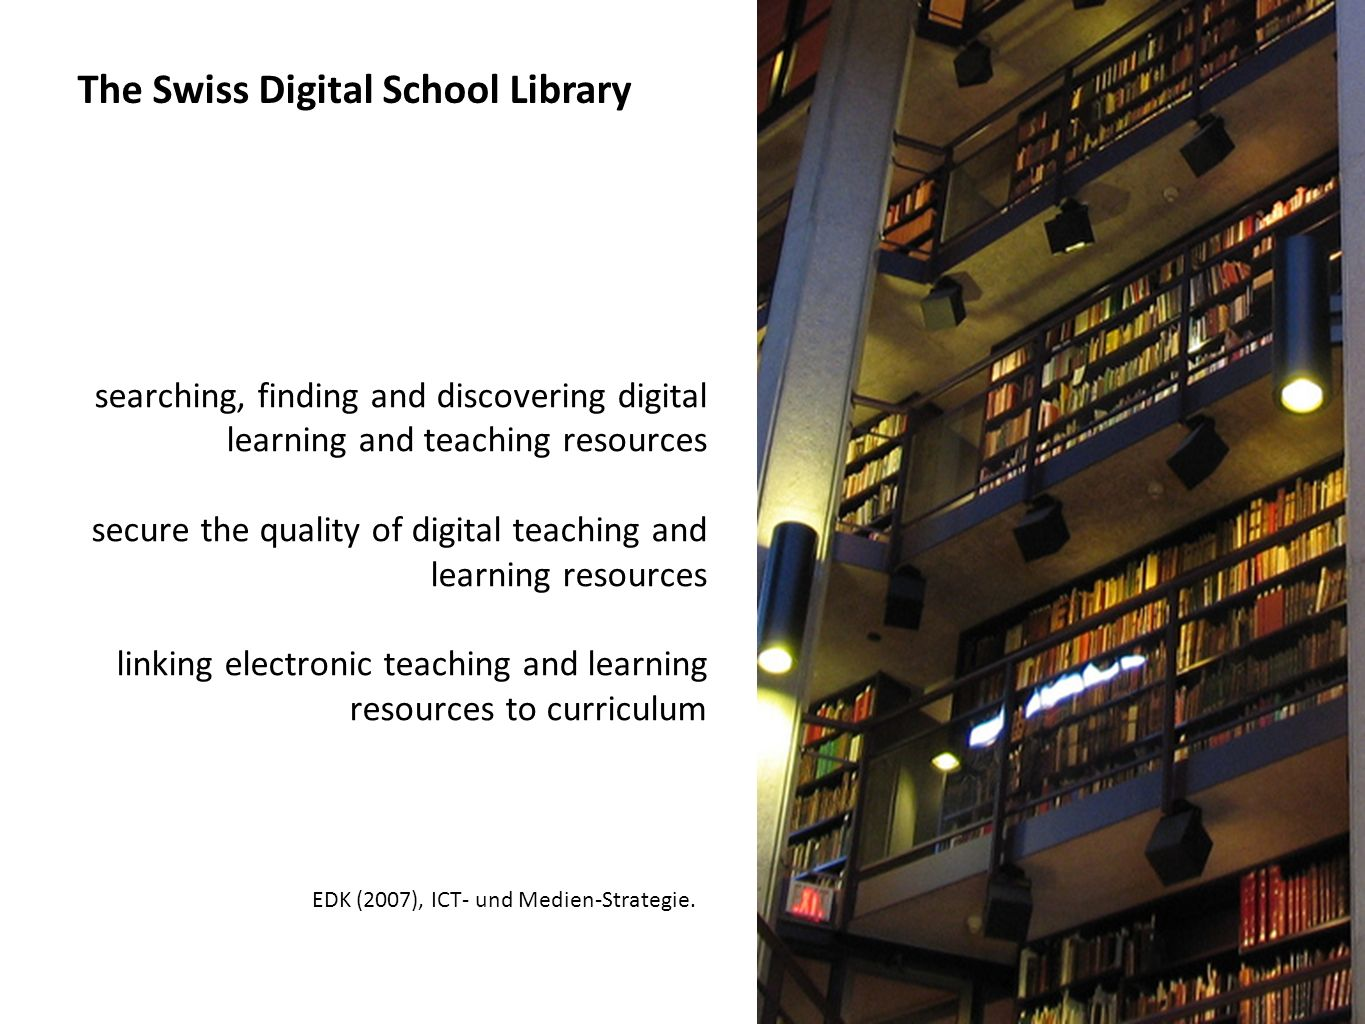 The Swiss Digital School Library EDK (2007), ICT- und Medien-Strategie.